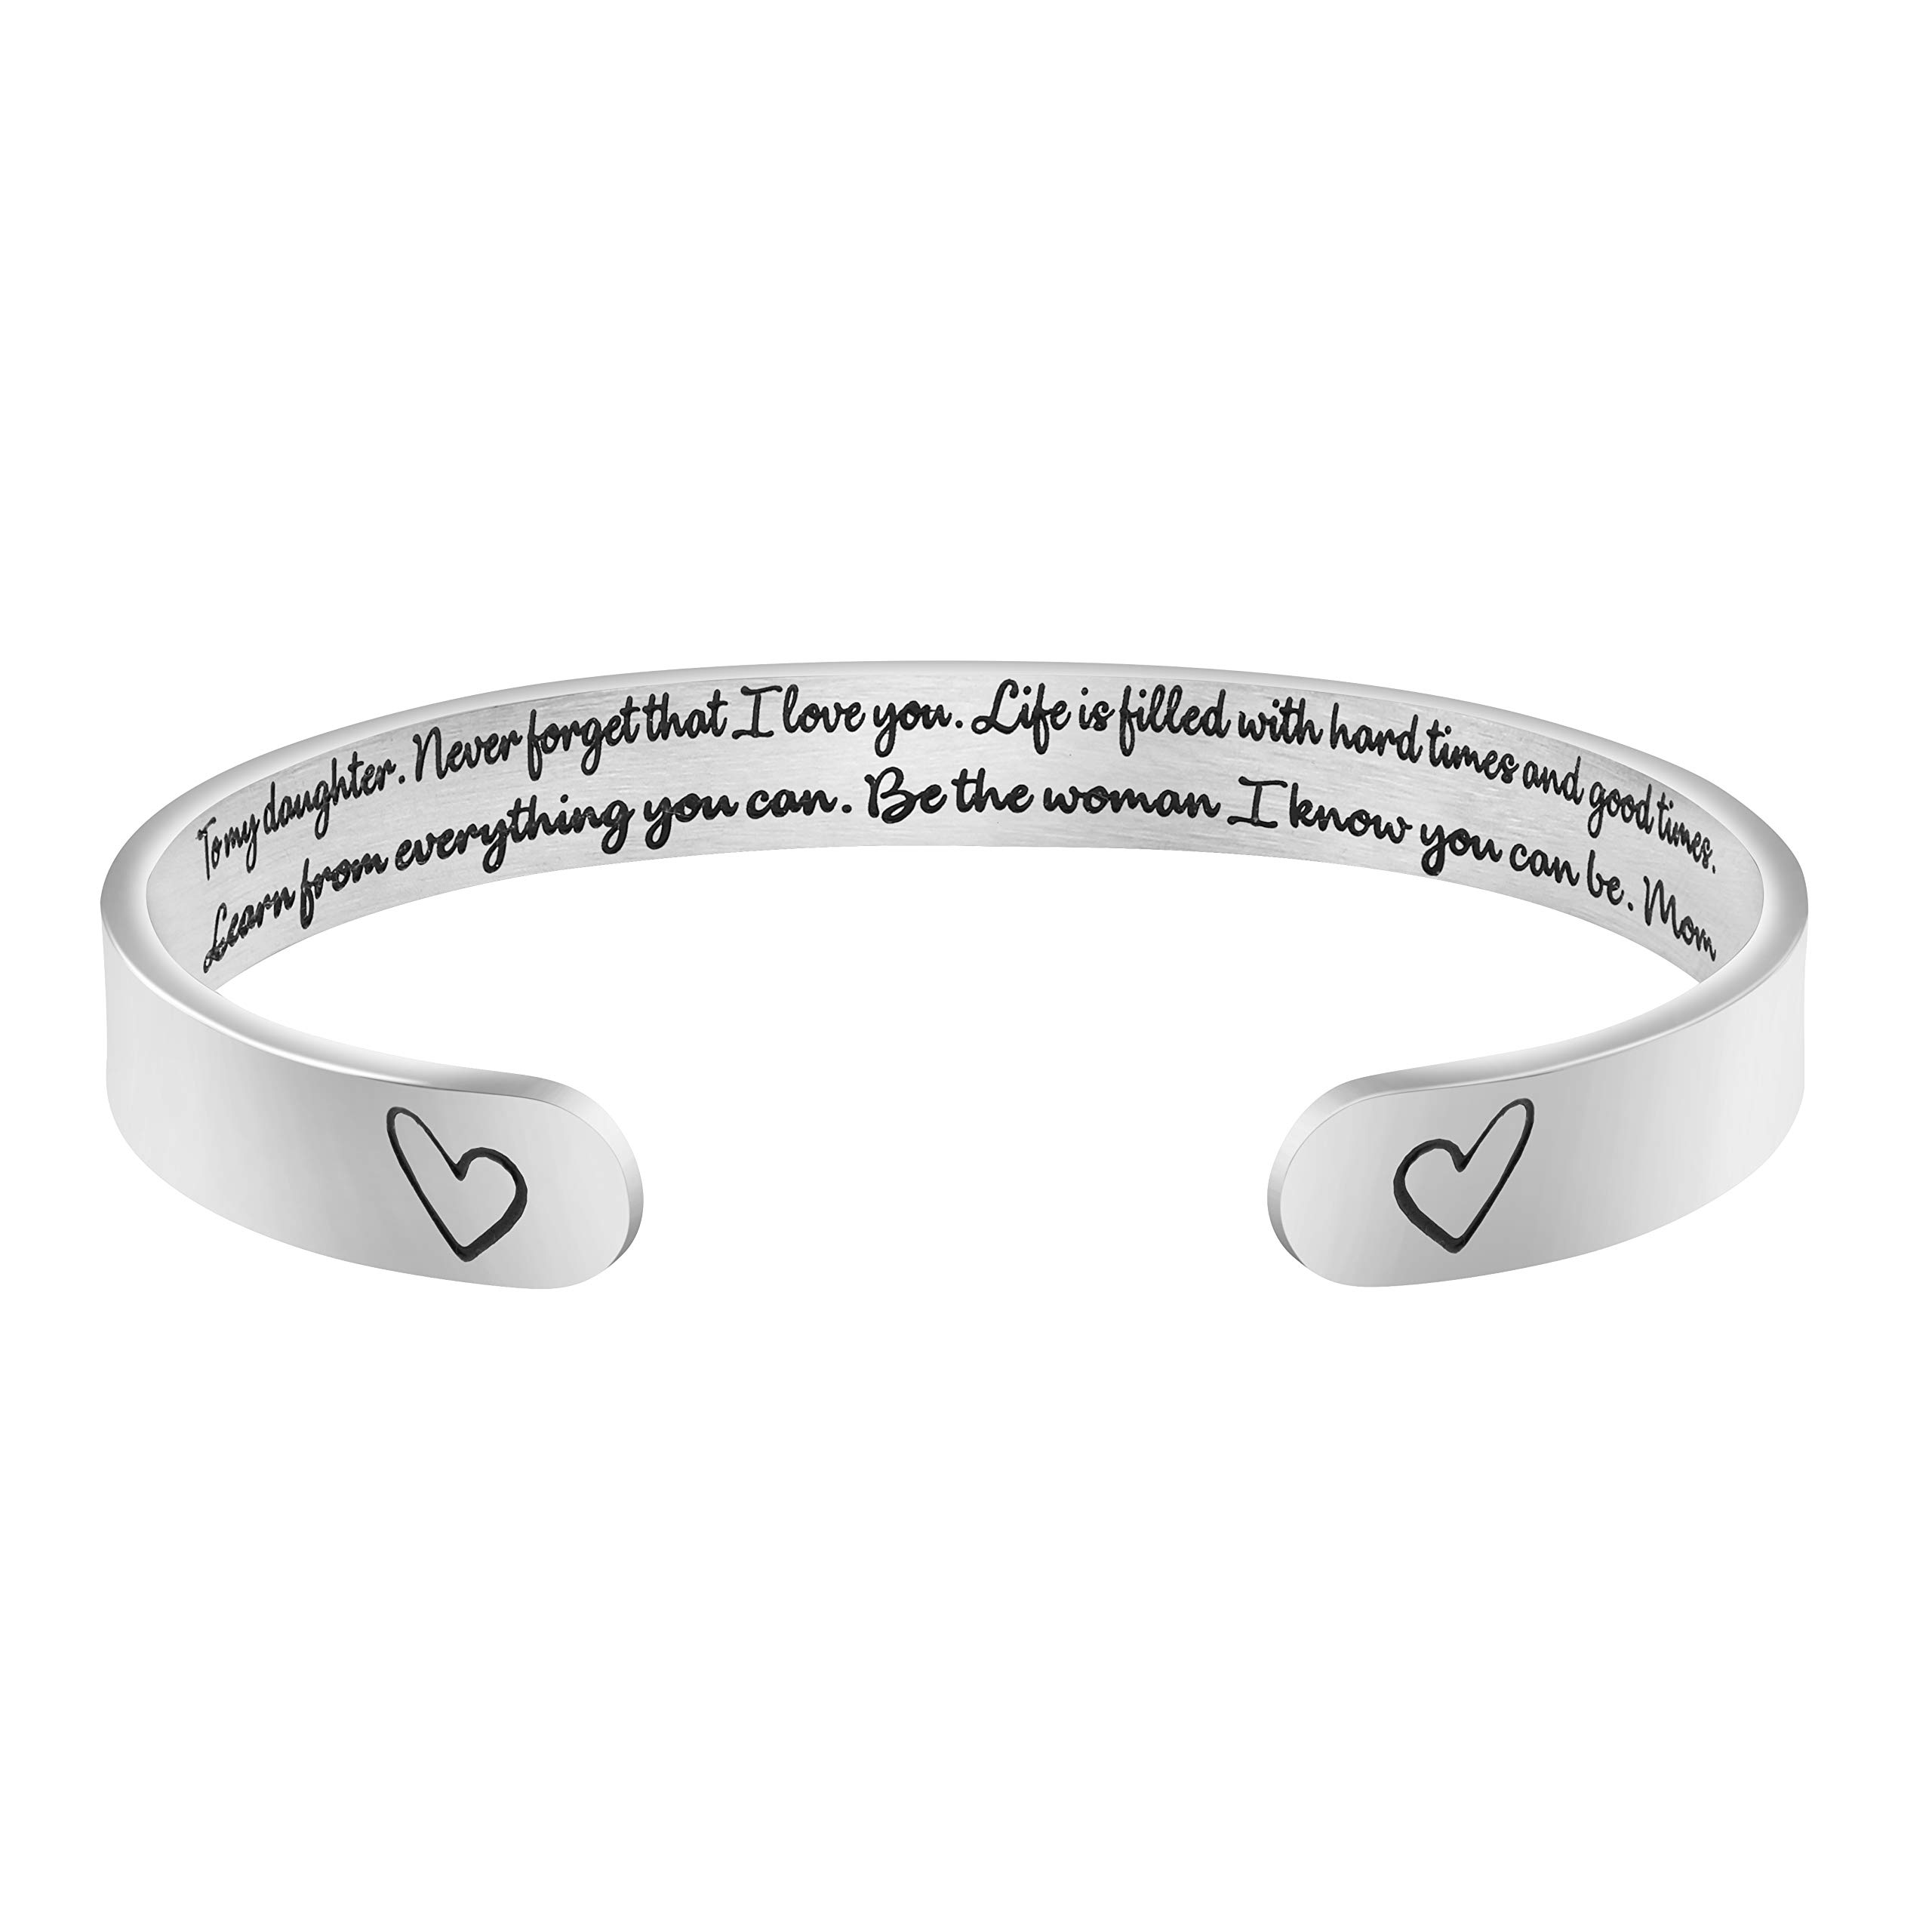 Awegift Daughter Bracelets from Mom Wide Cuff Bangle Message Engraved Her